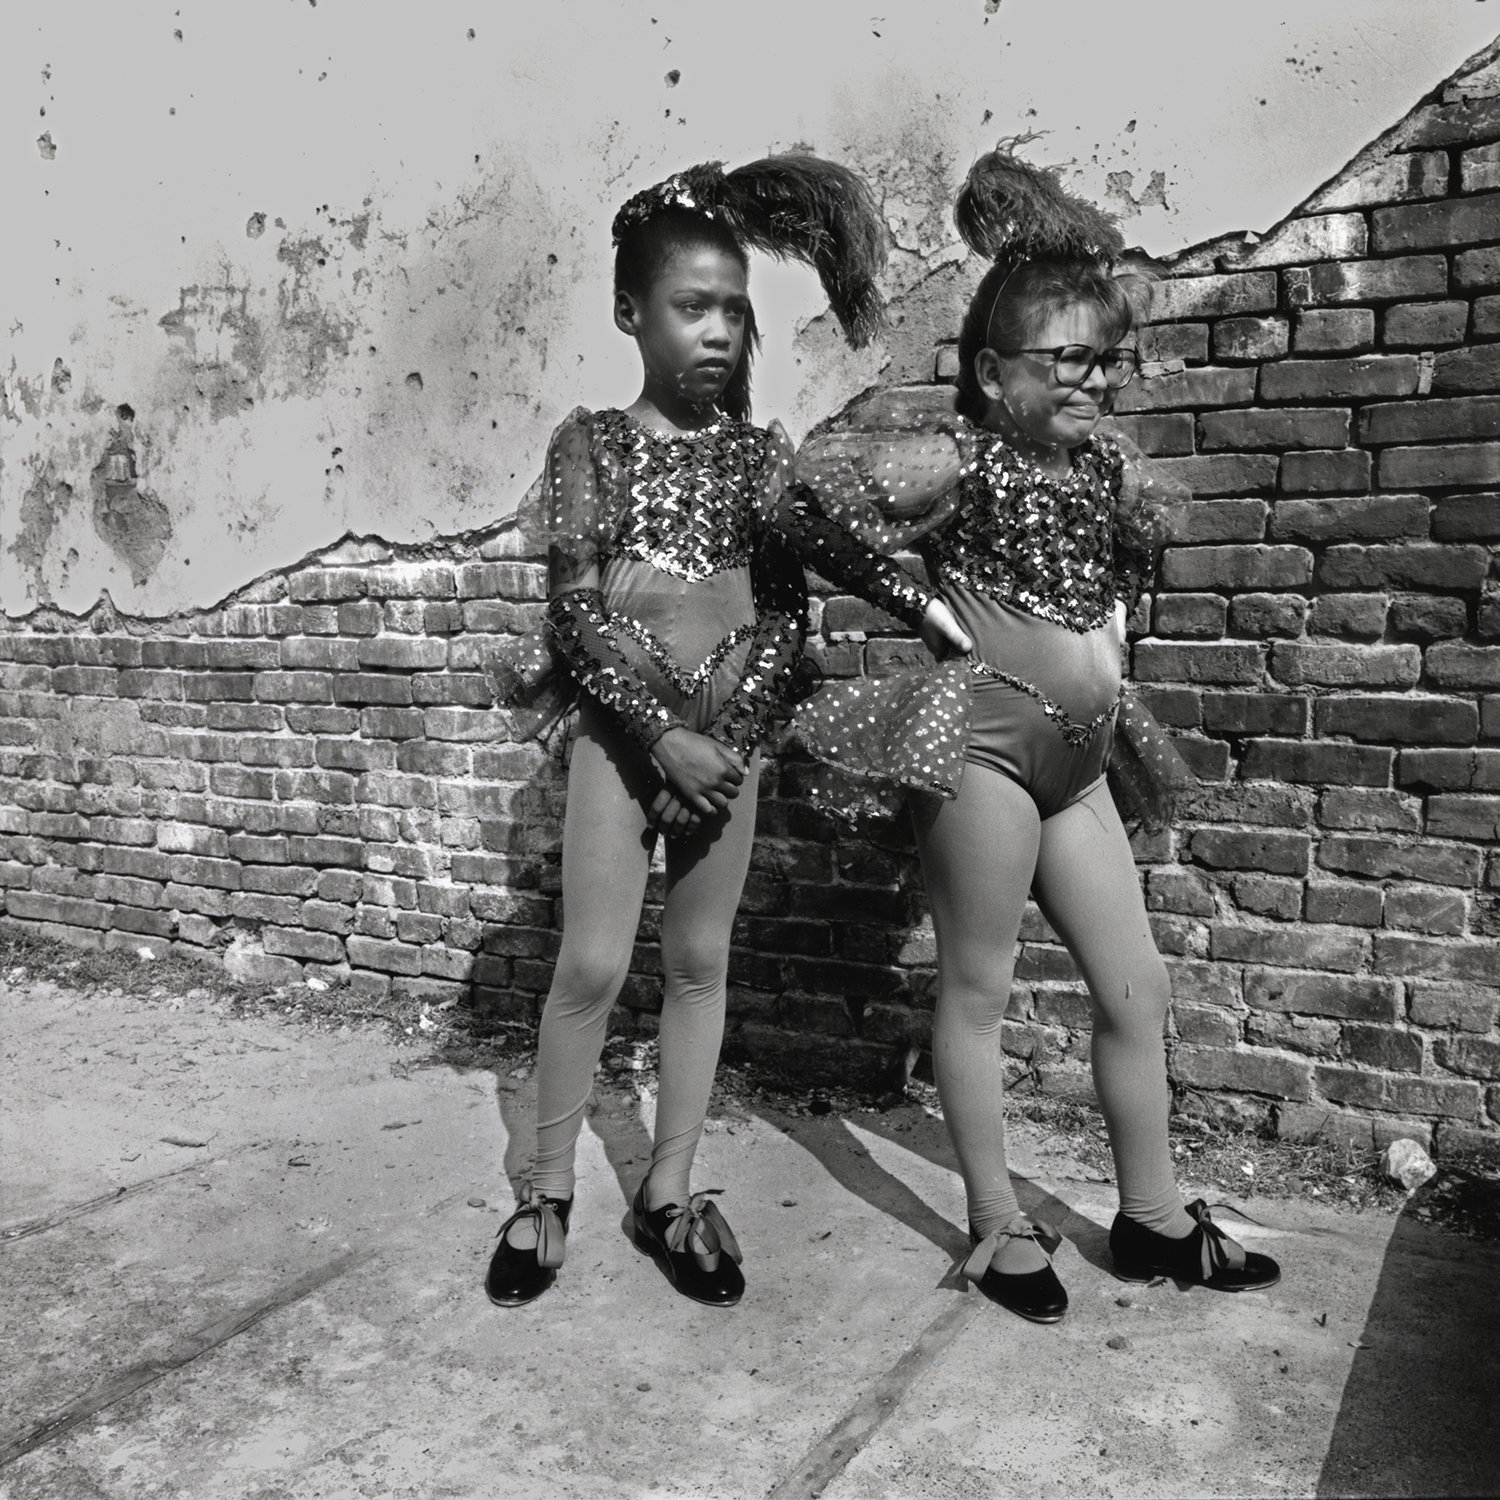 Girls Waiting to Dance, Cairo, Illinois, archival pigment print,16x20, 1990